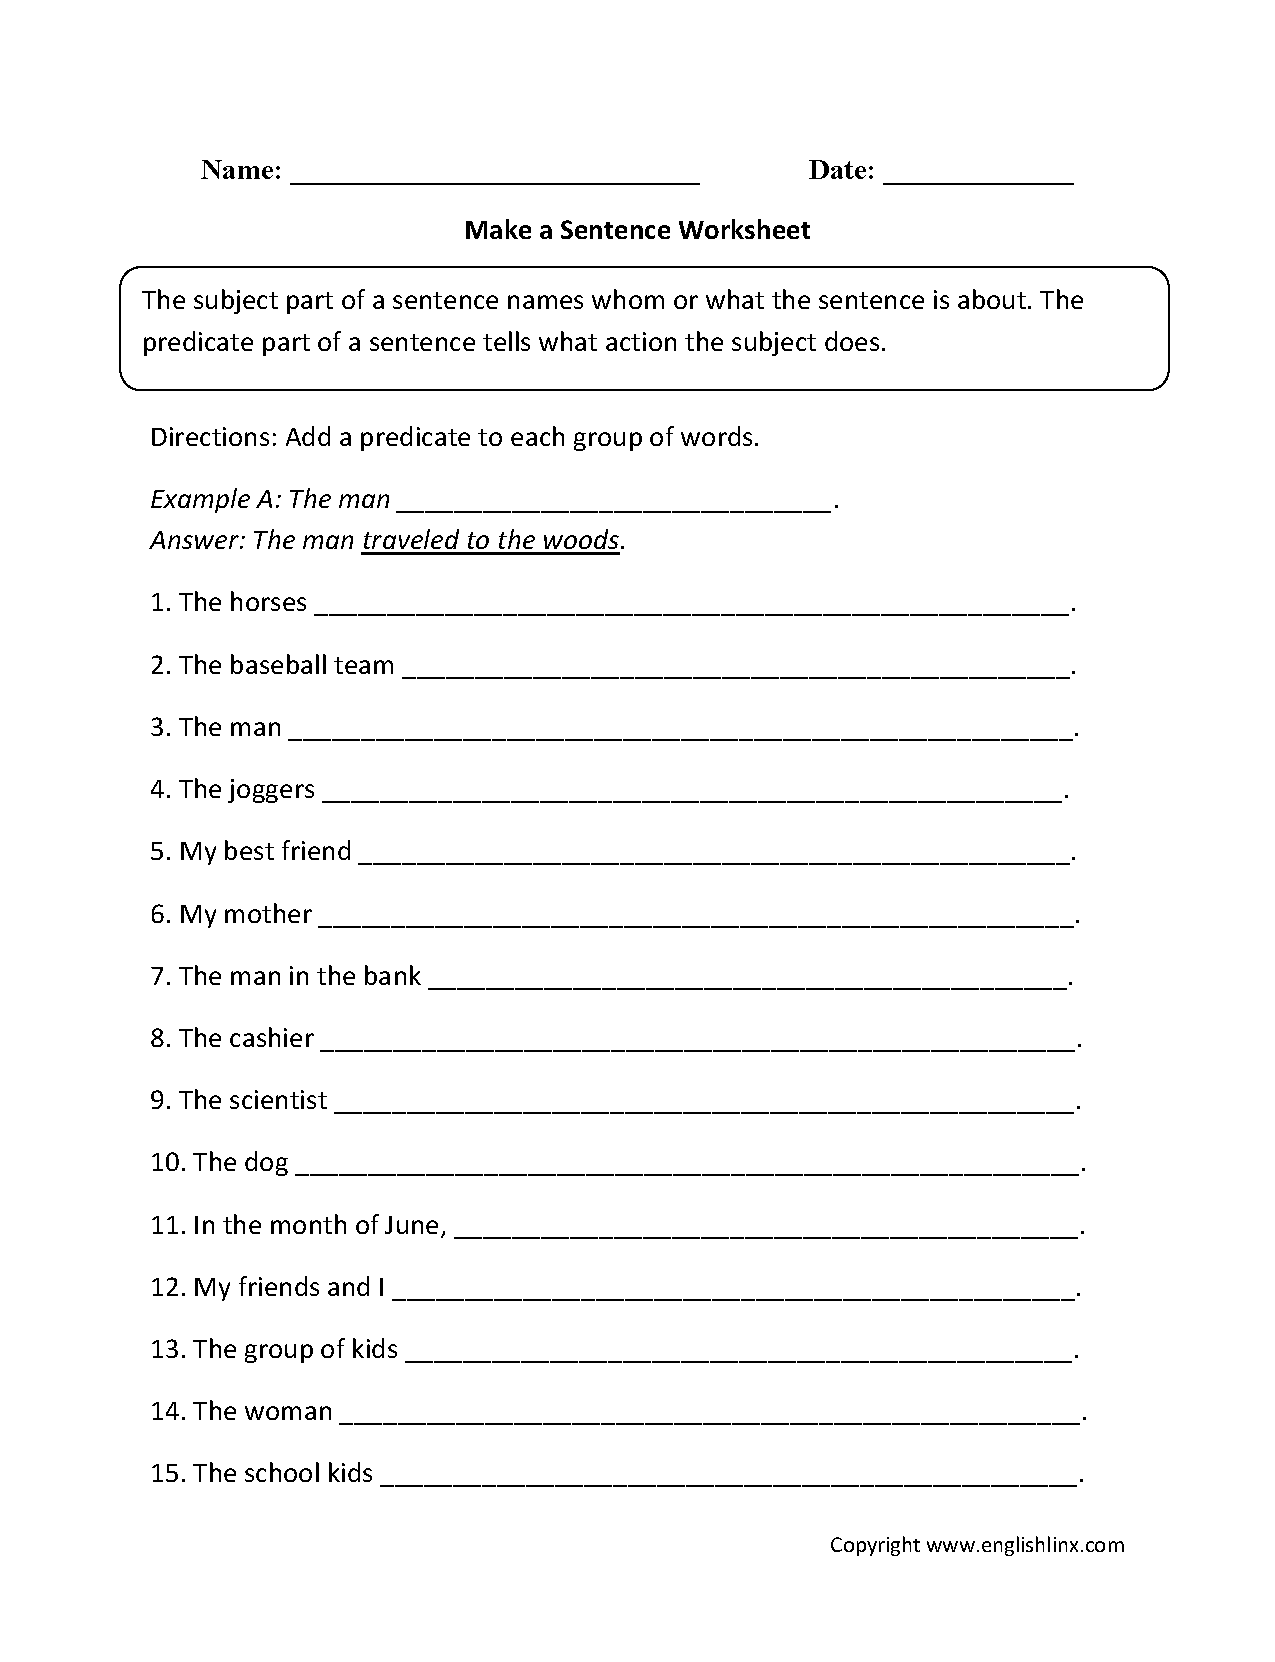 Worksheets Sentence Completion Worksheets sentence structure worksheets building make a worksheet